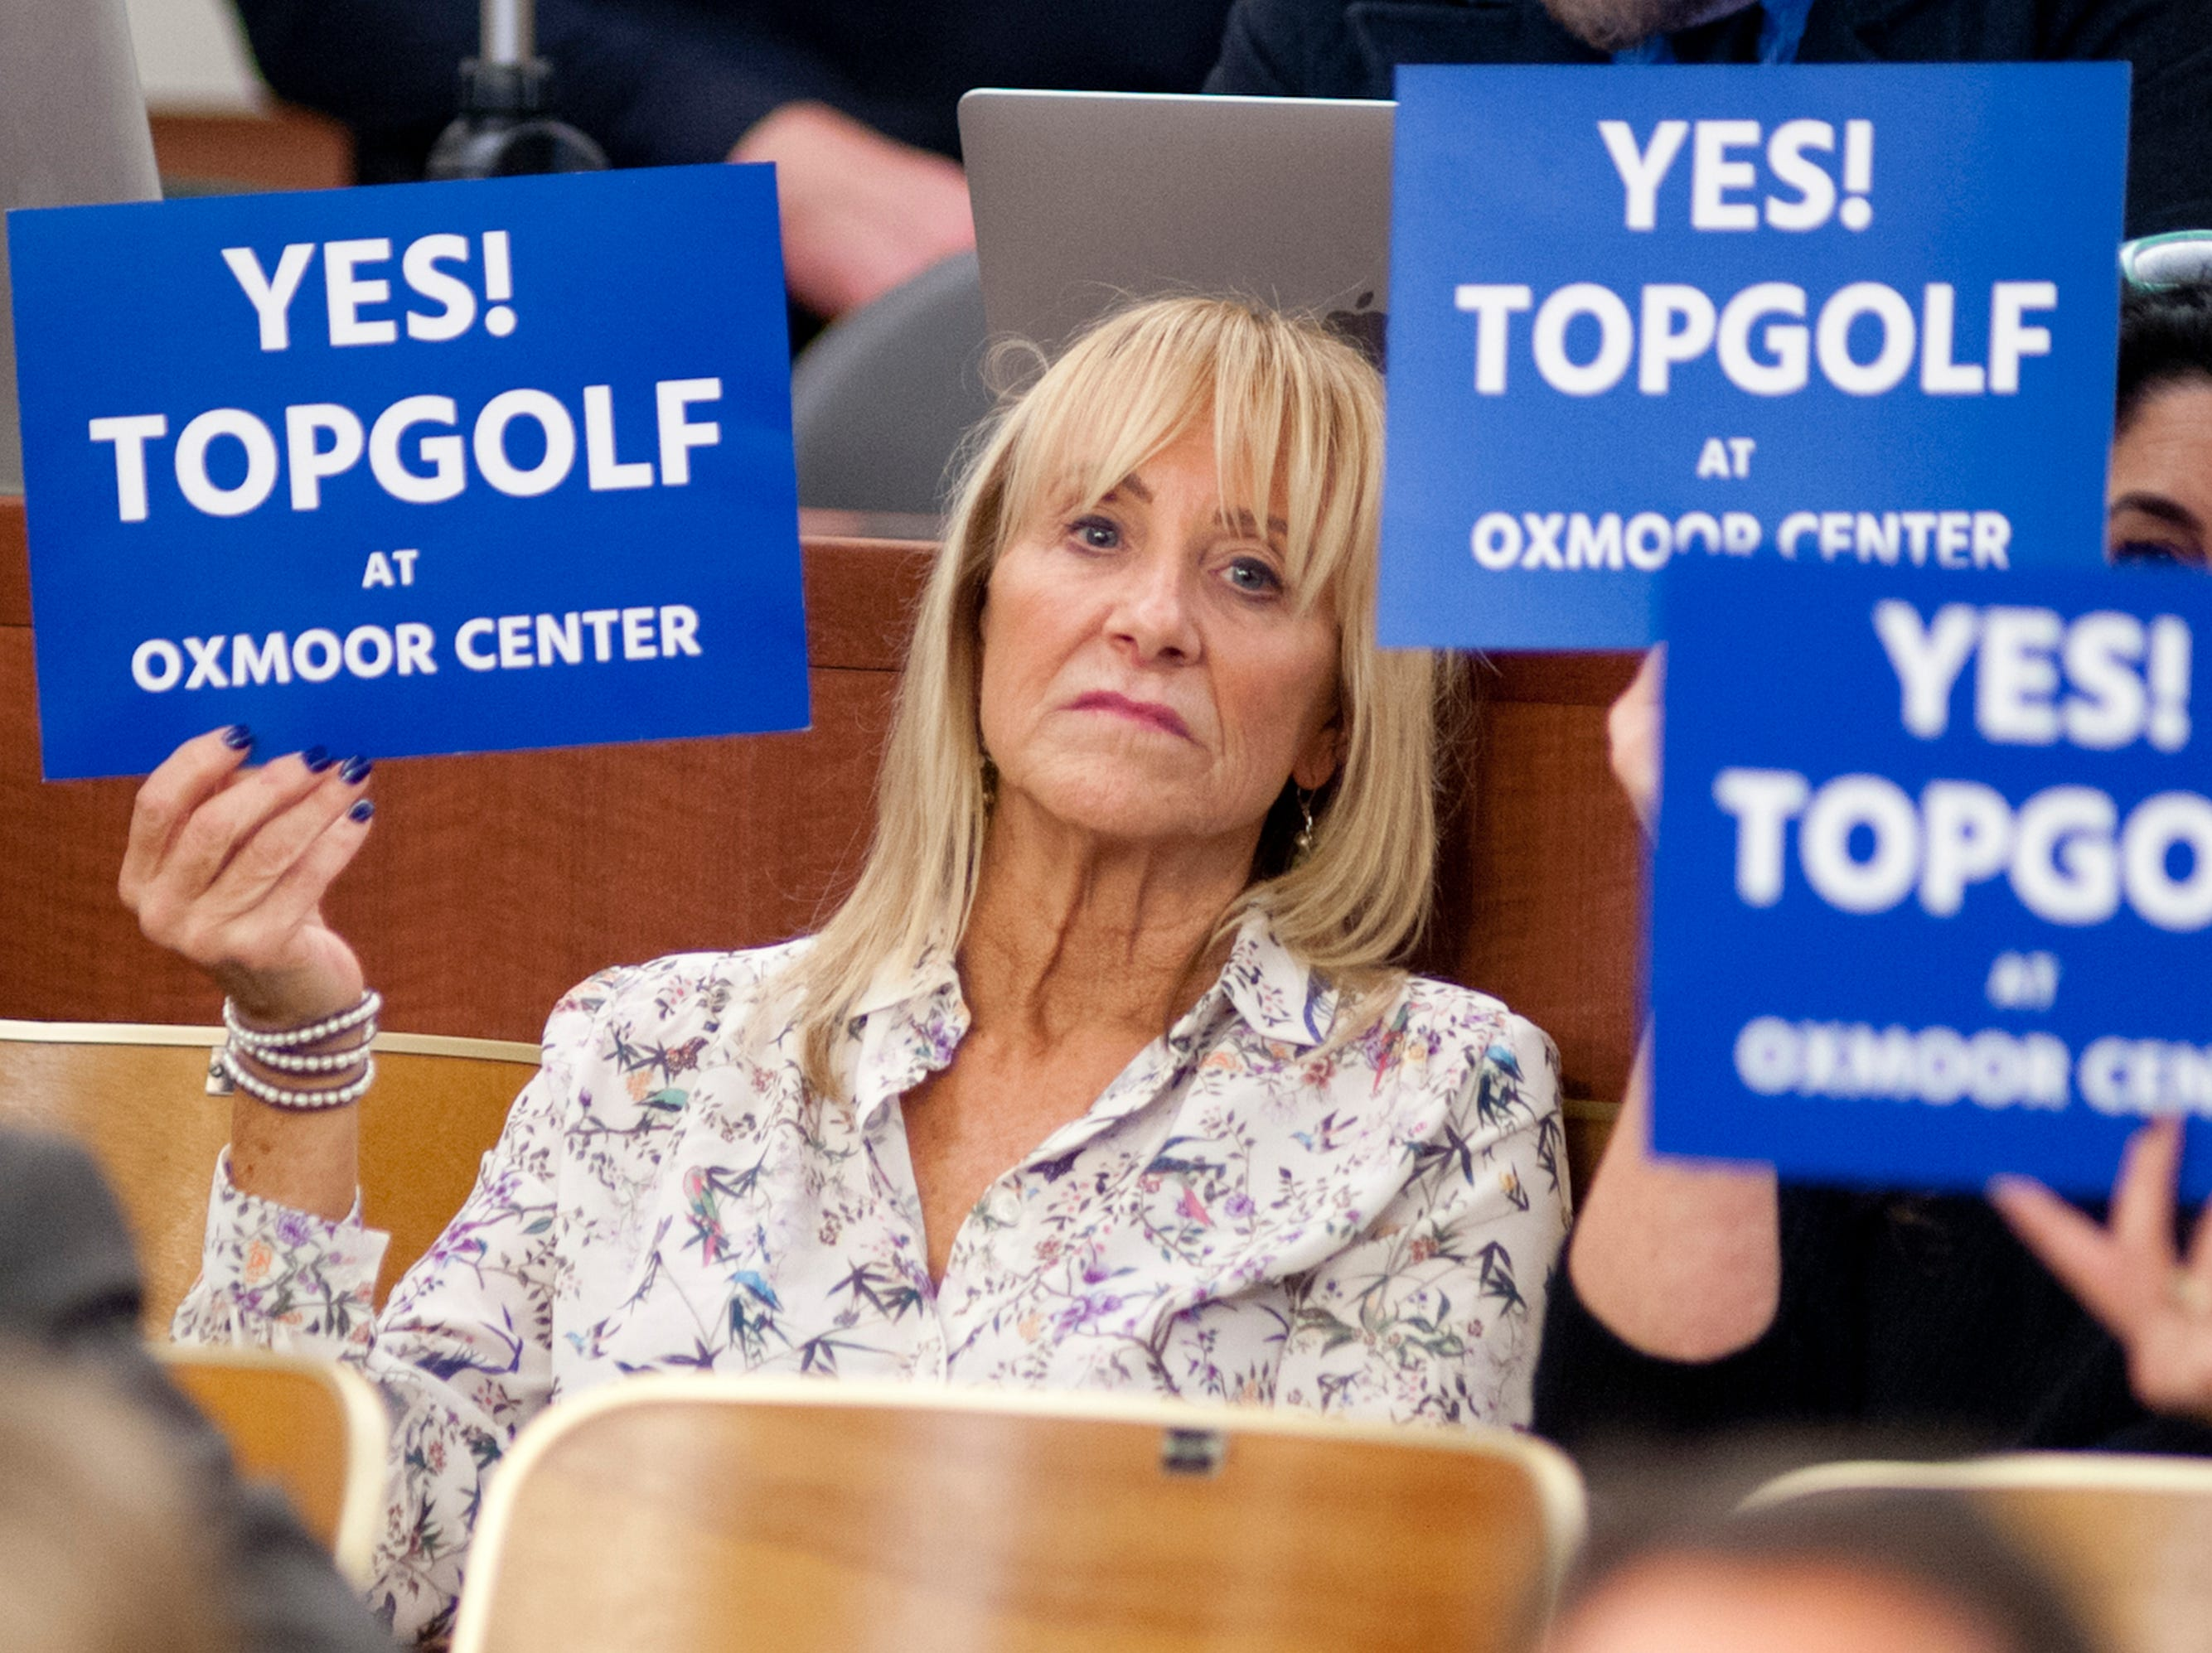 Supporters of Topgolf at Oxmoor Center hold up placards during the debate on approving the planning commission's recommendations on Nov. 29, 2018.